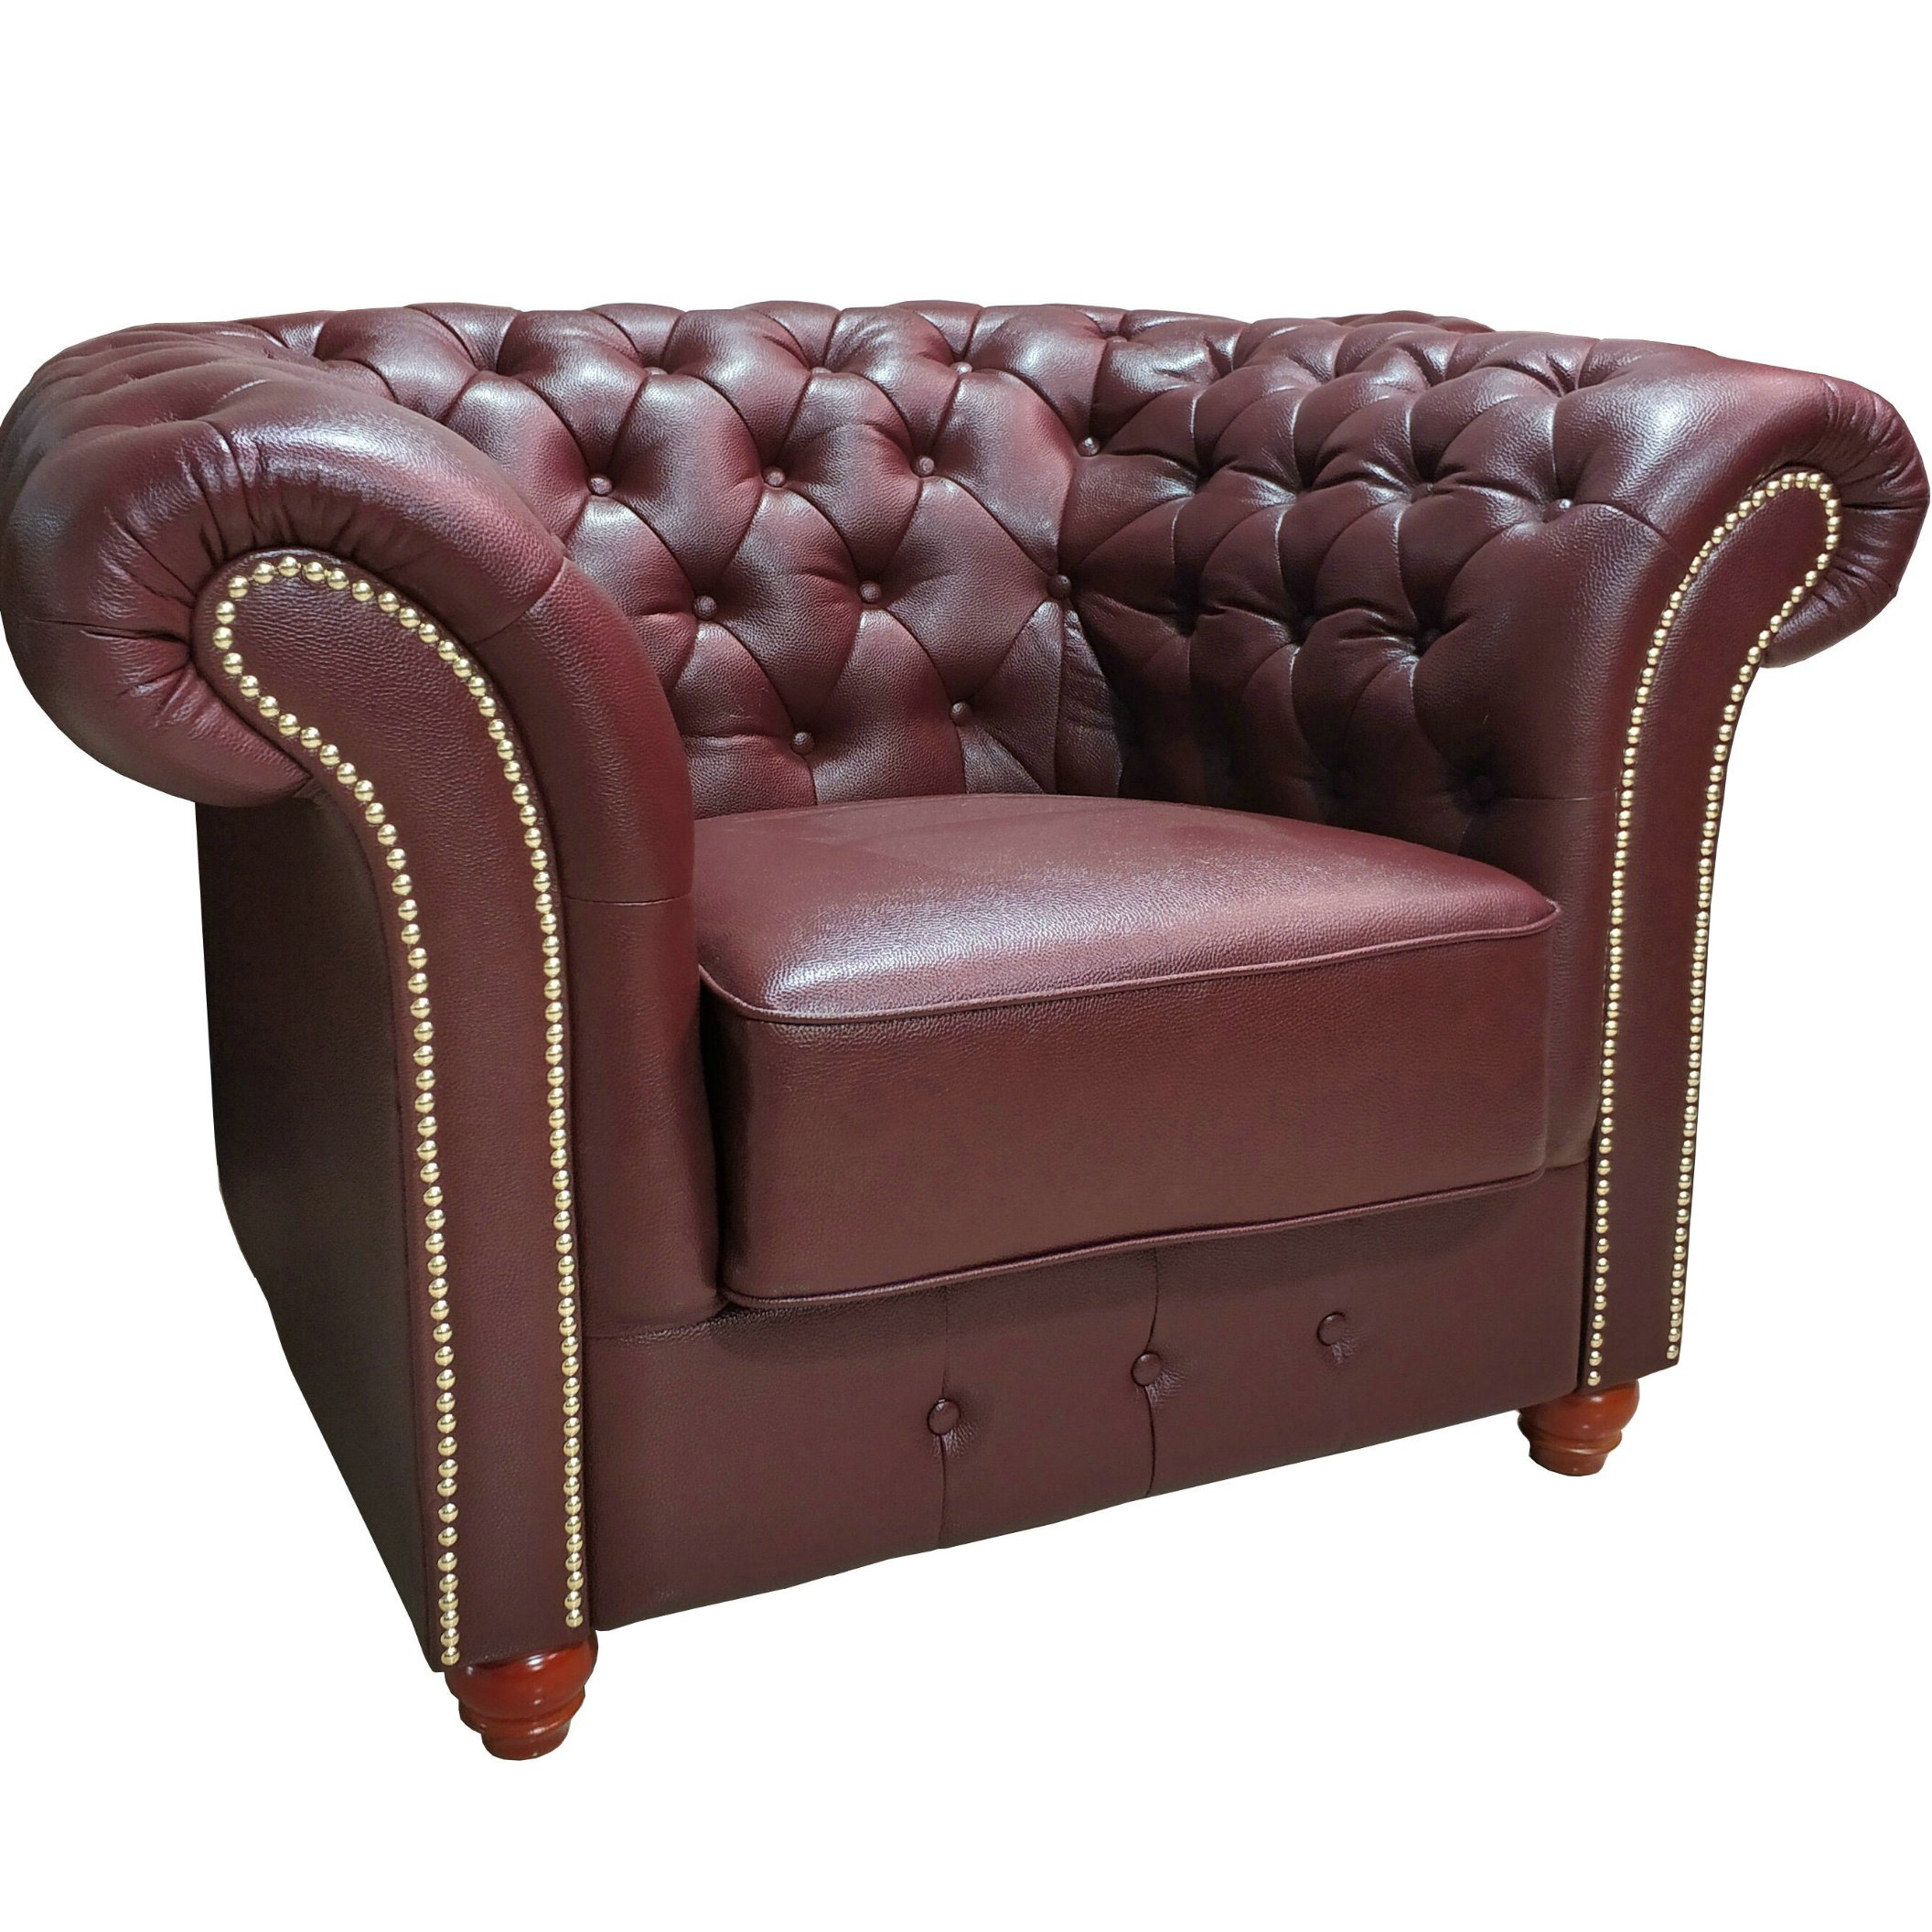 Top China Leather Chesterfield Furniture, Leather Chesterfield VJ28